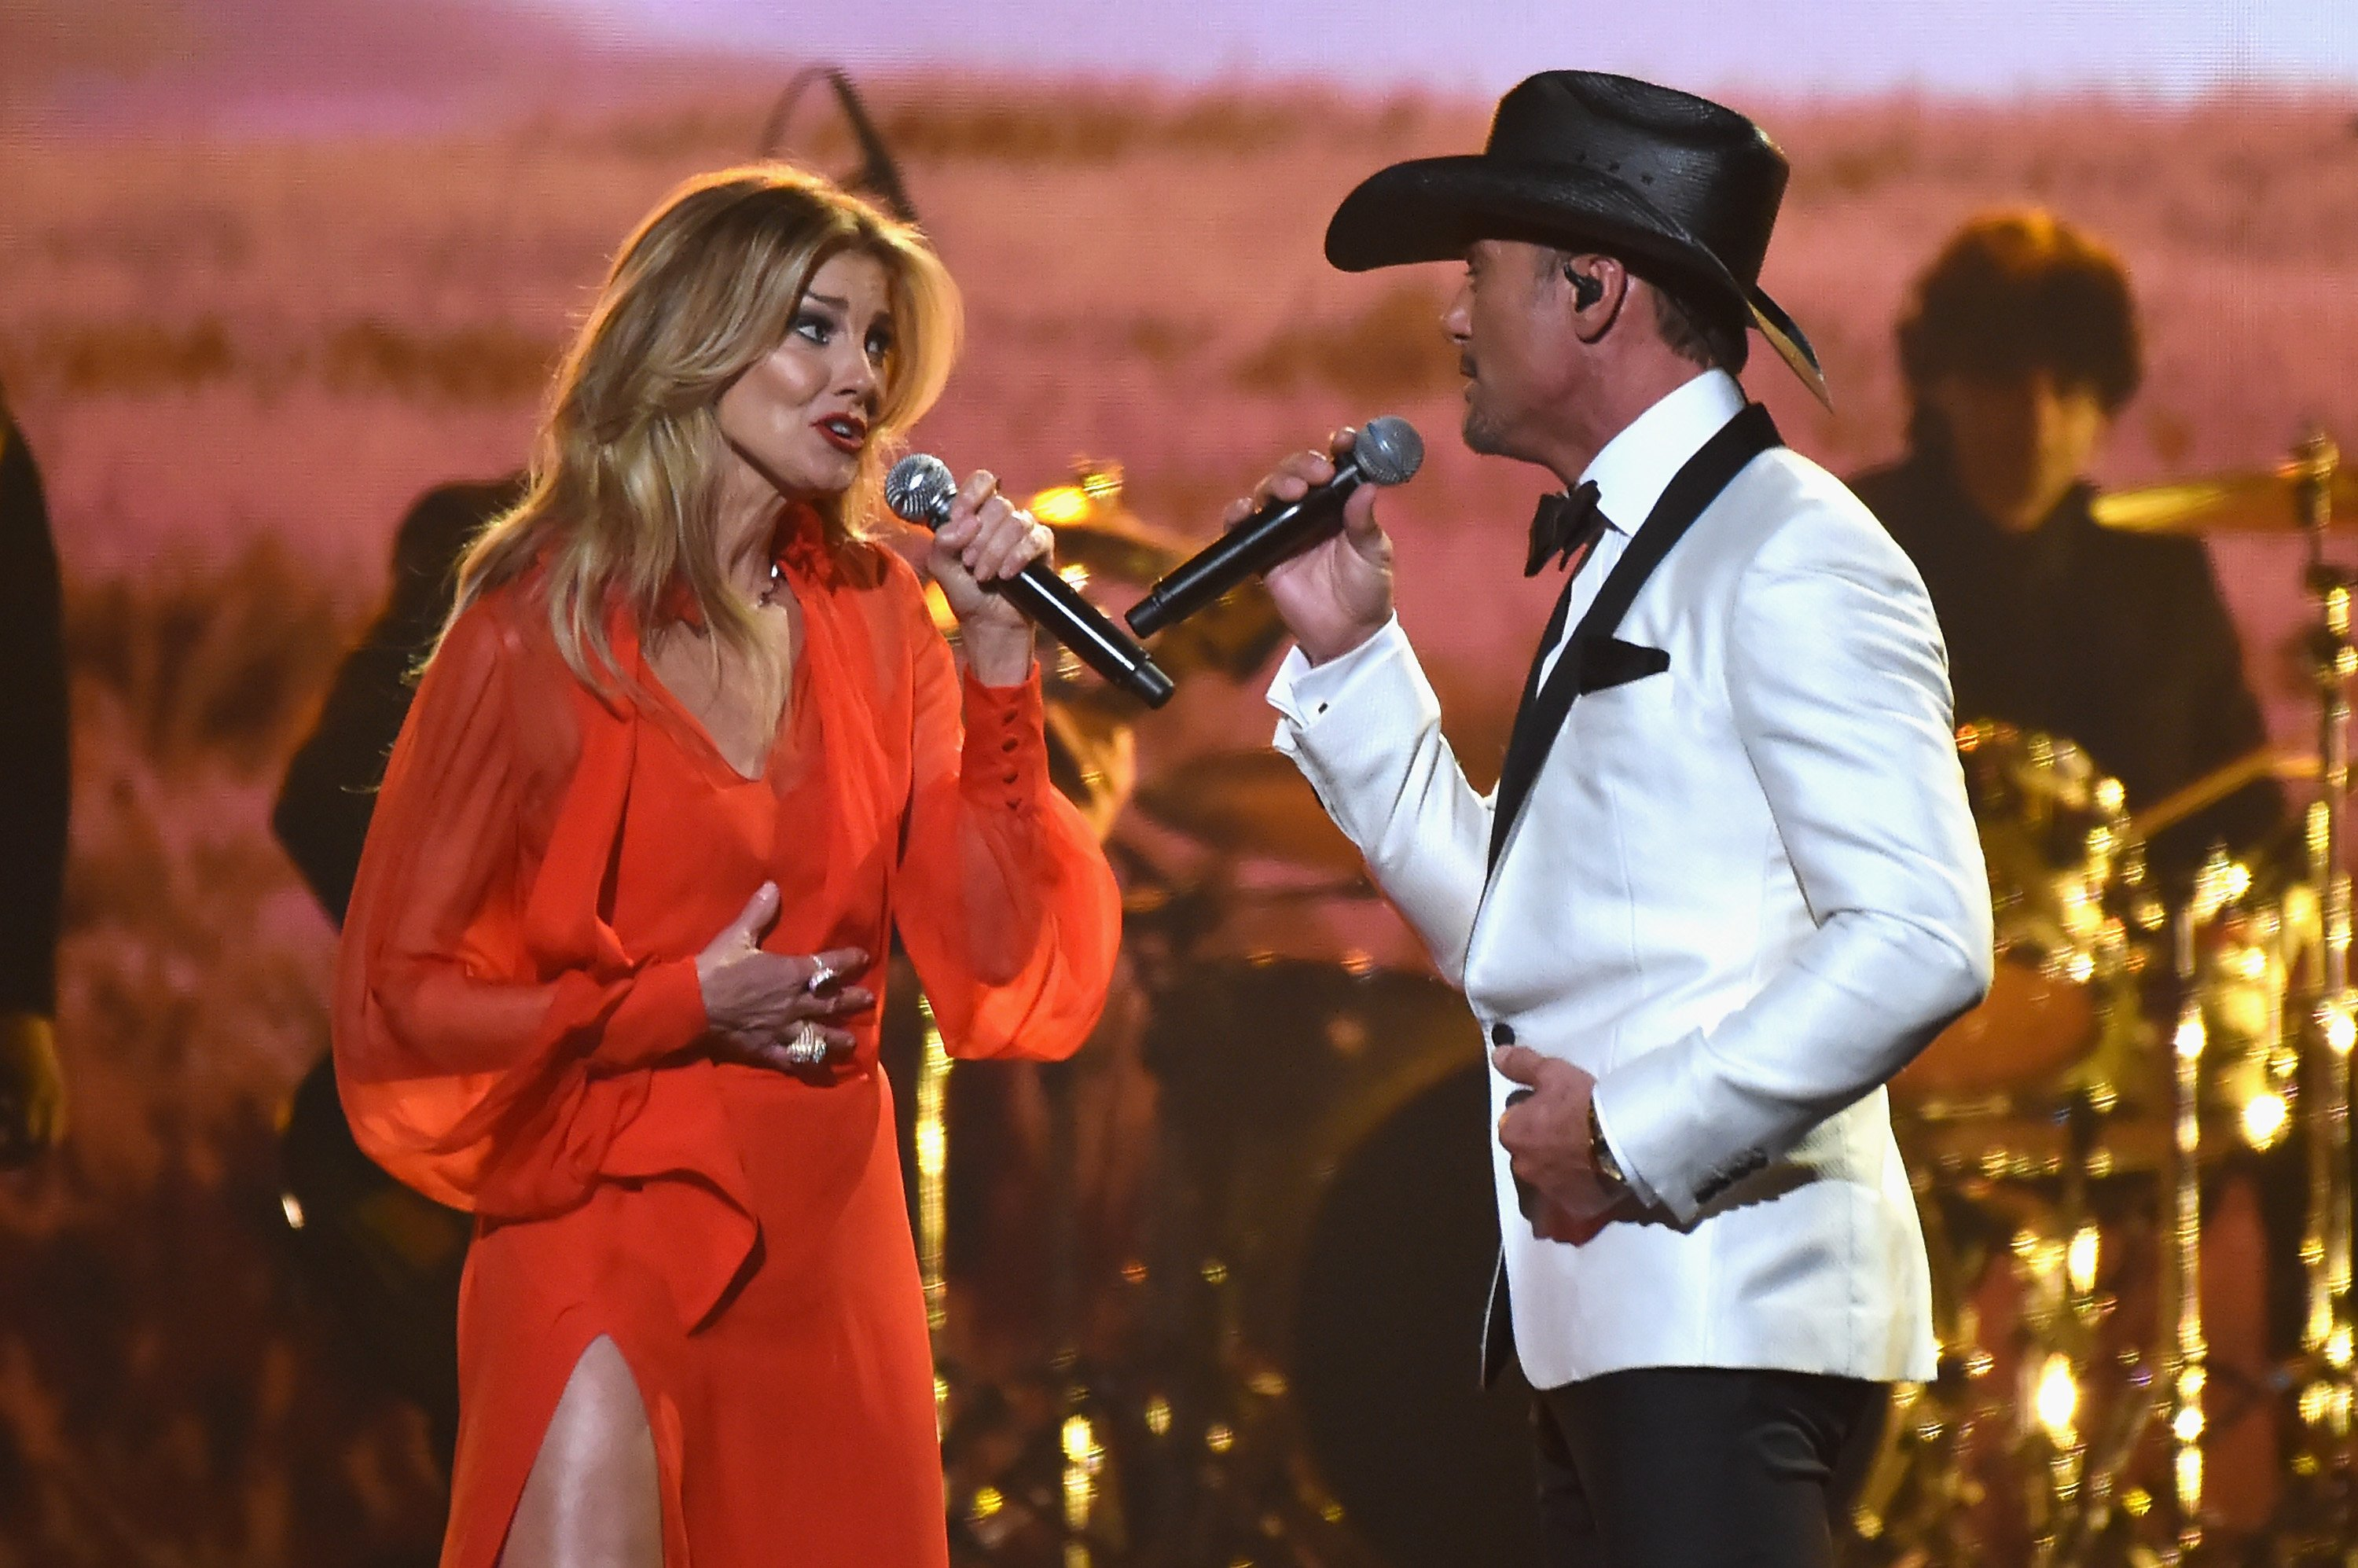 Image Credits: Getty Images / Rick Diamond | Faith Hill and Tim McGraw perform onstage at the 51st annual CMA Awards at the Bridgestone Arena on November 8, 2017 in Nashville, Tennessee.